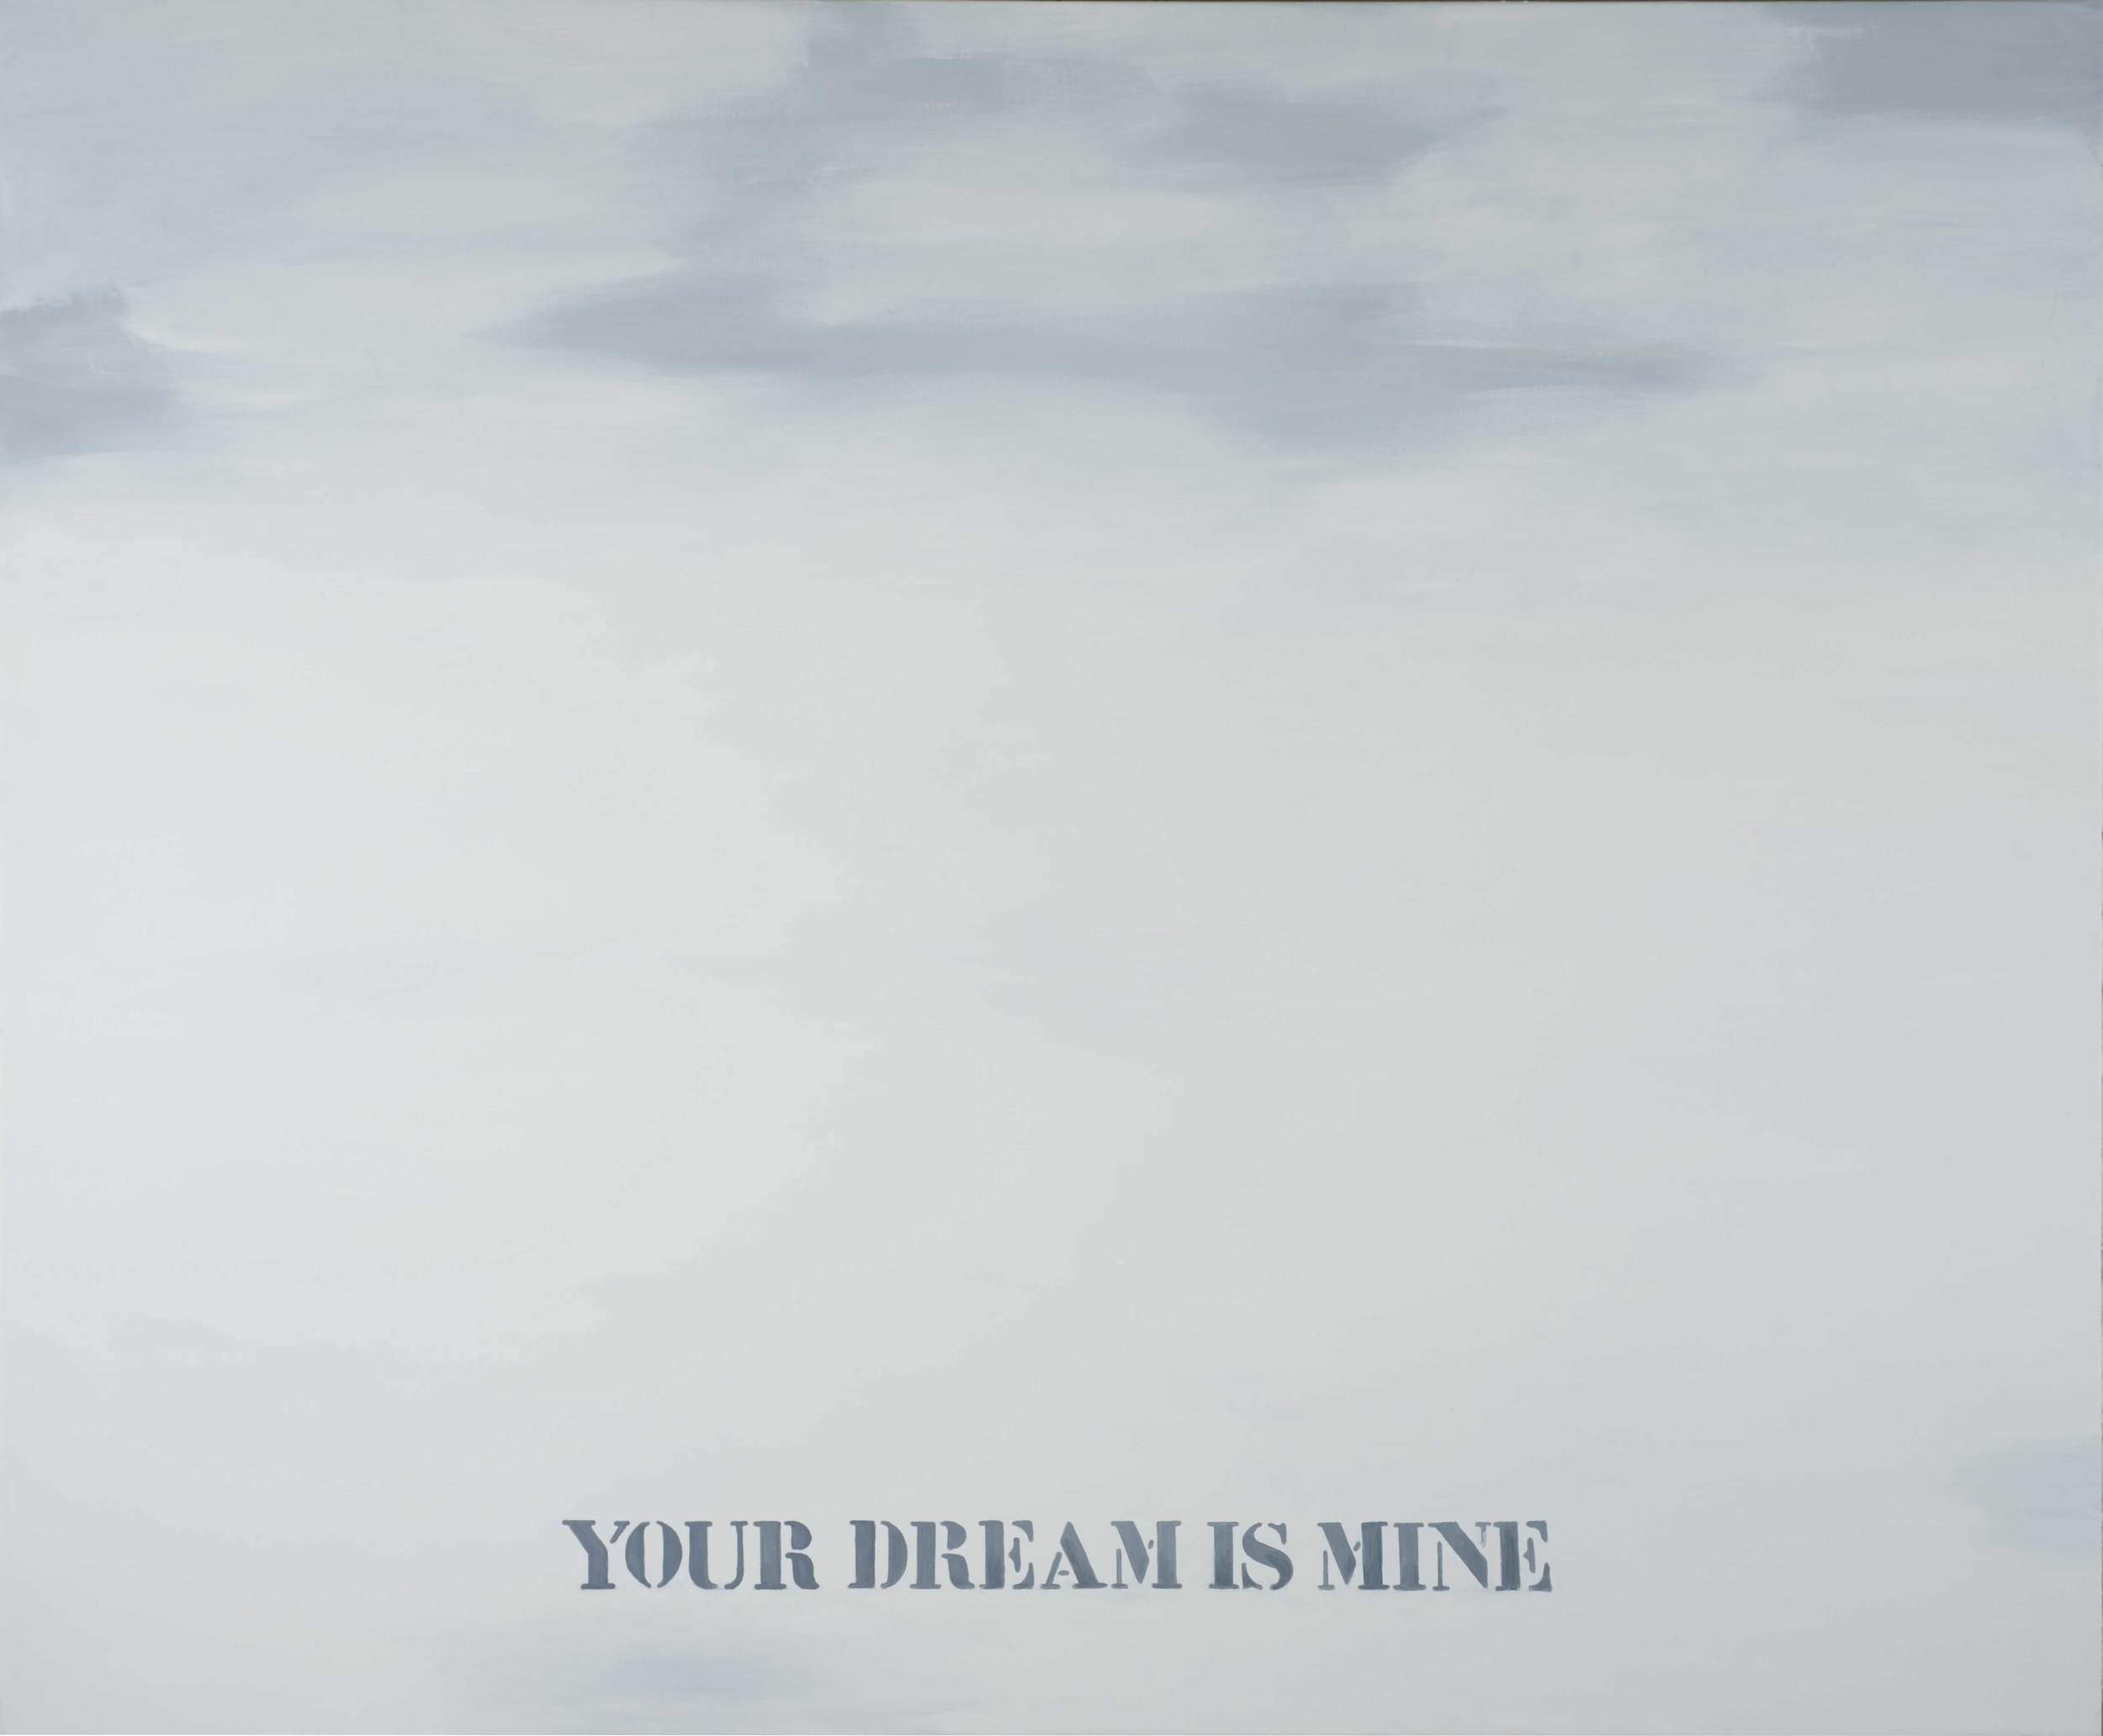 Your dream is mine